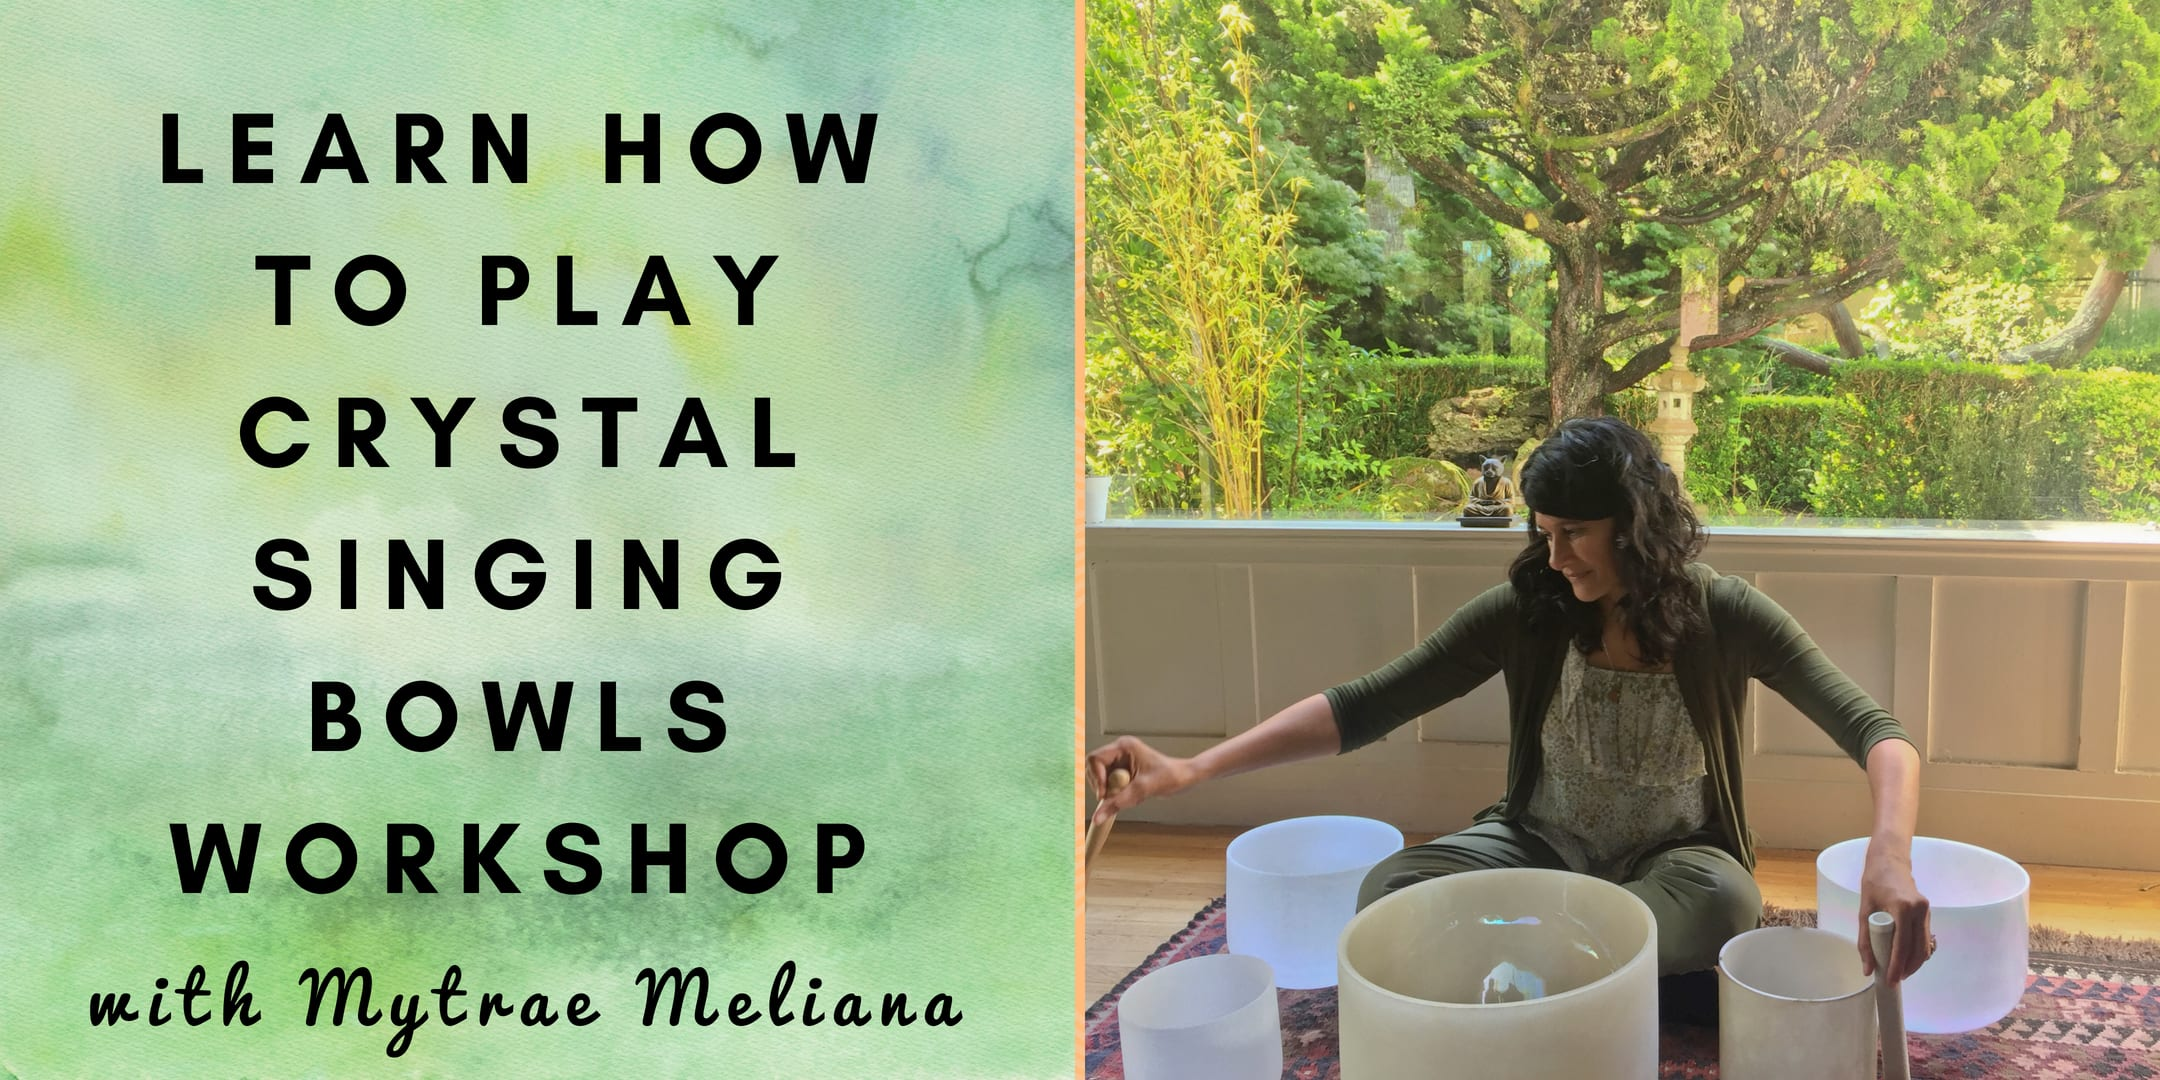 Learn How To Play Crystal Singing Bowls Workshop